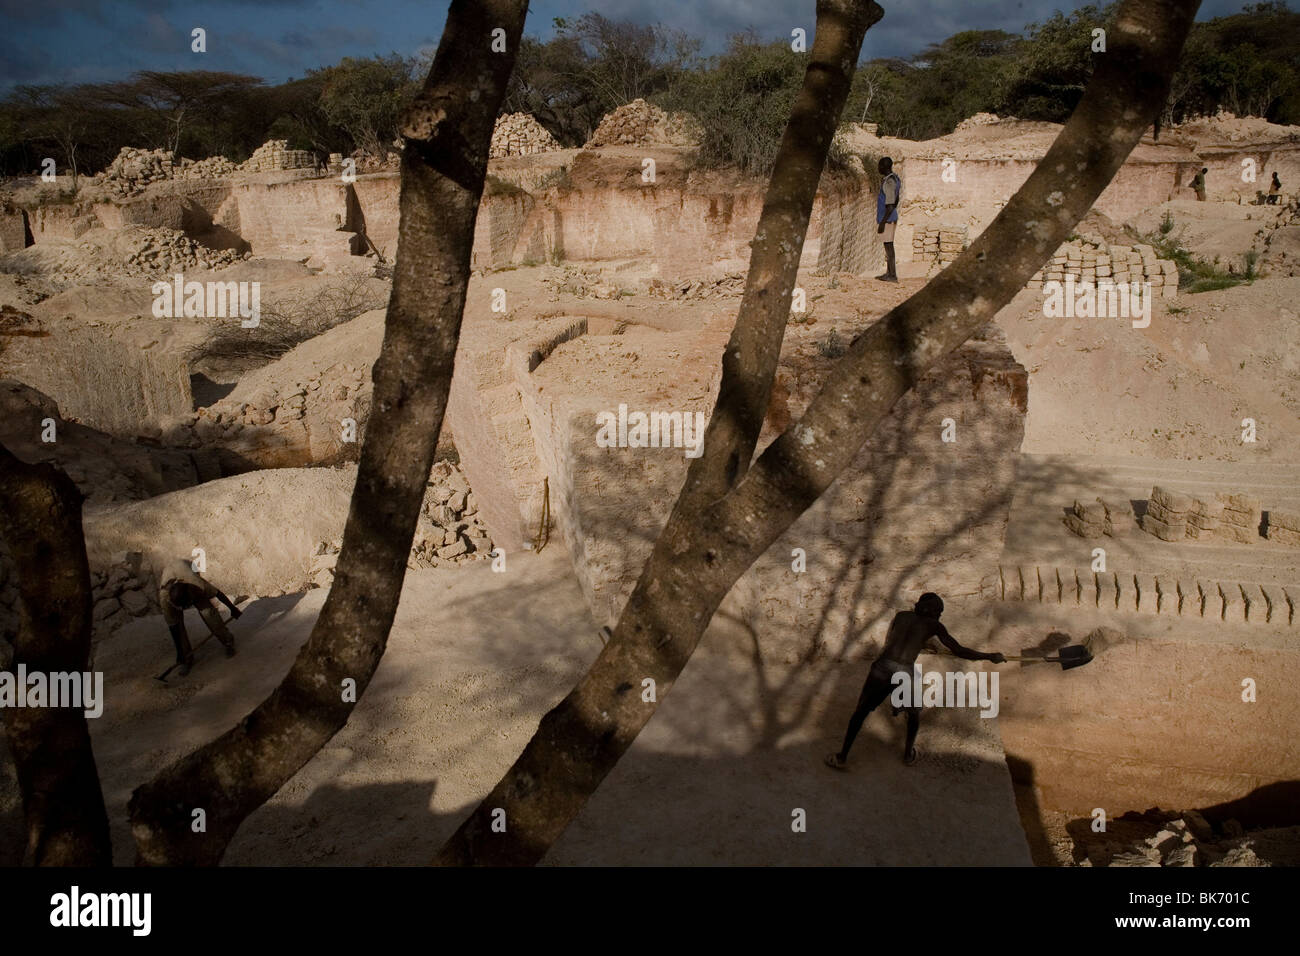 Men at work in a stone query used to make bricks to build houses on September 27, 2009 on Manda island in the Lamu - Stock Image